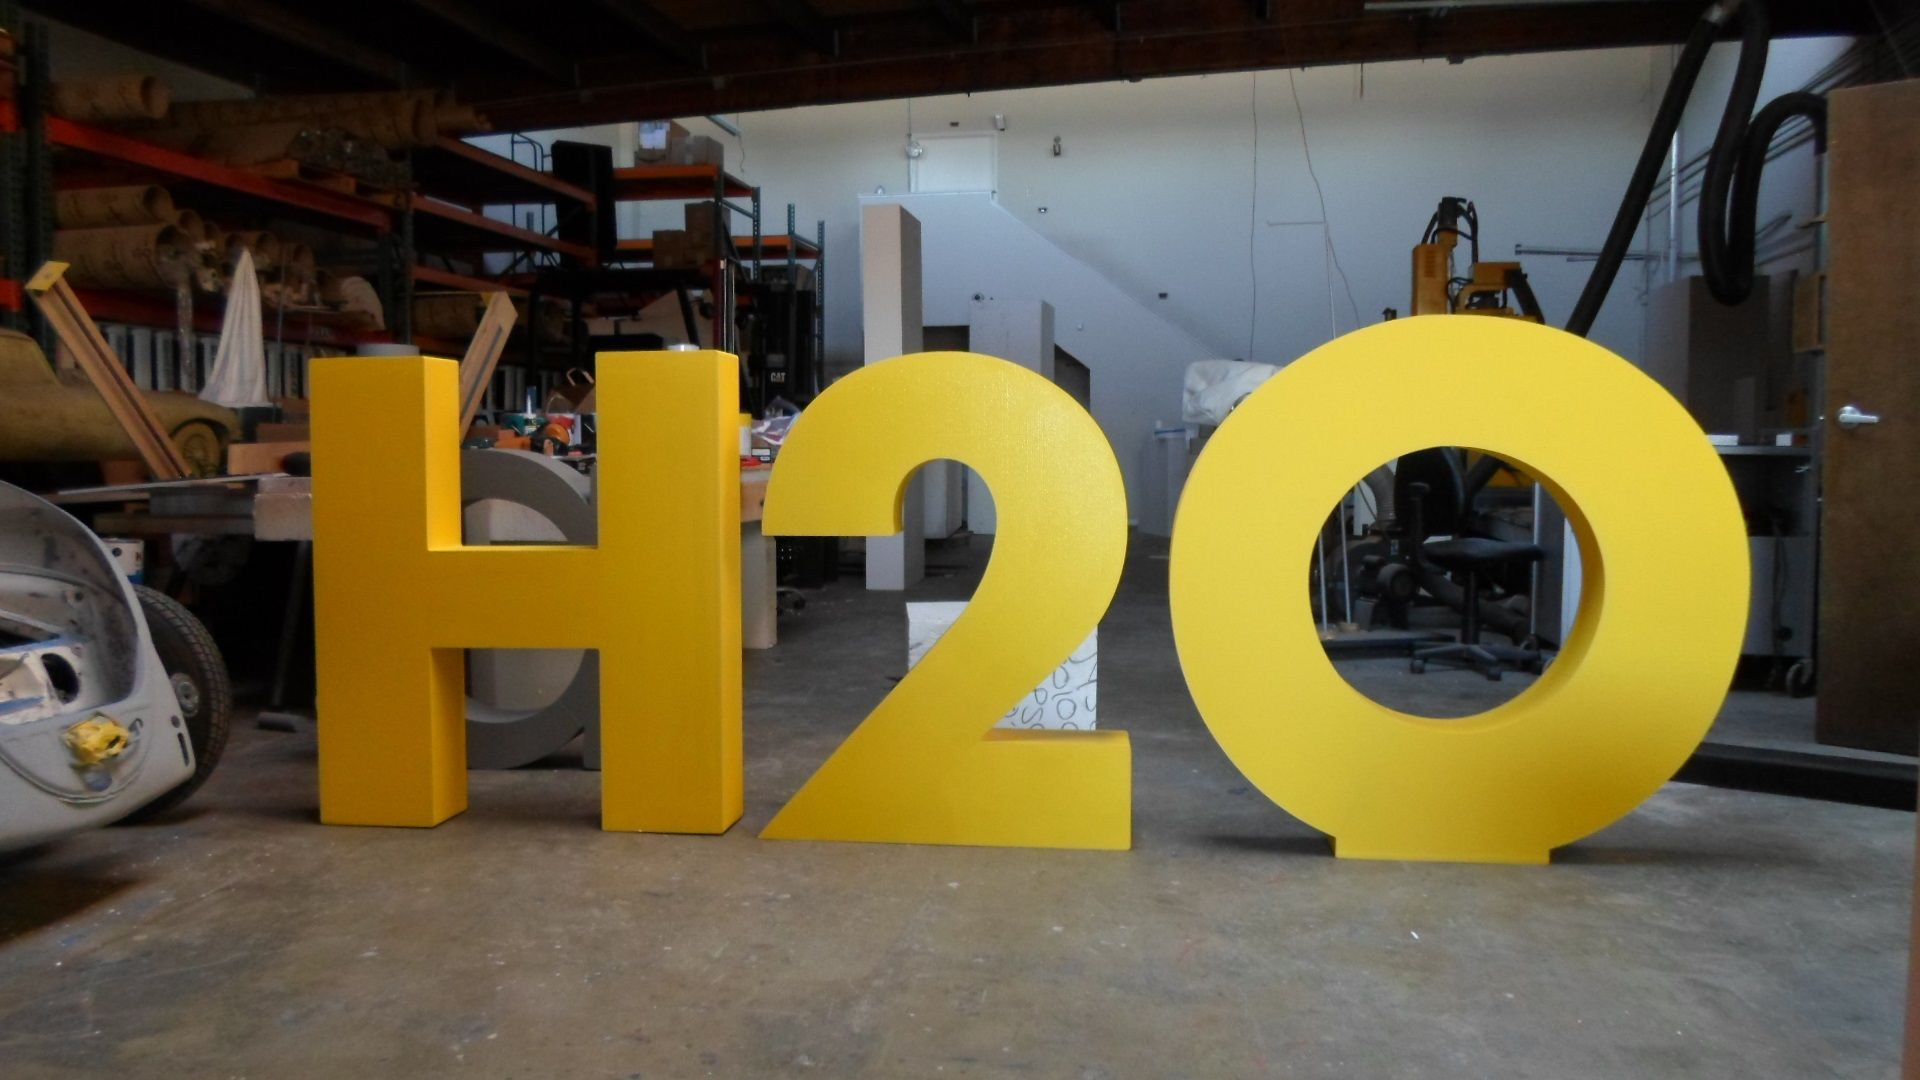 Foam letters and numbers sign logo by